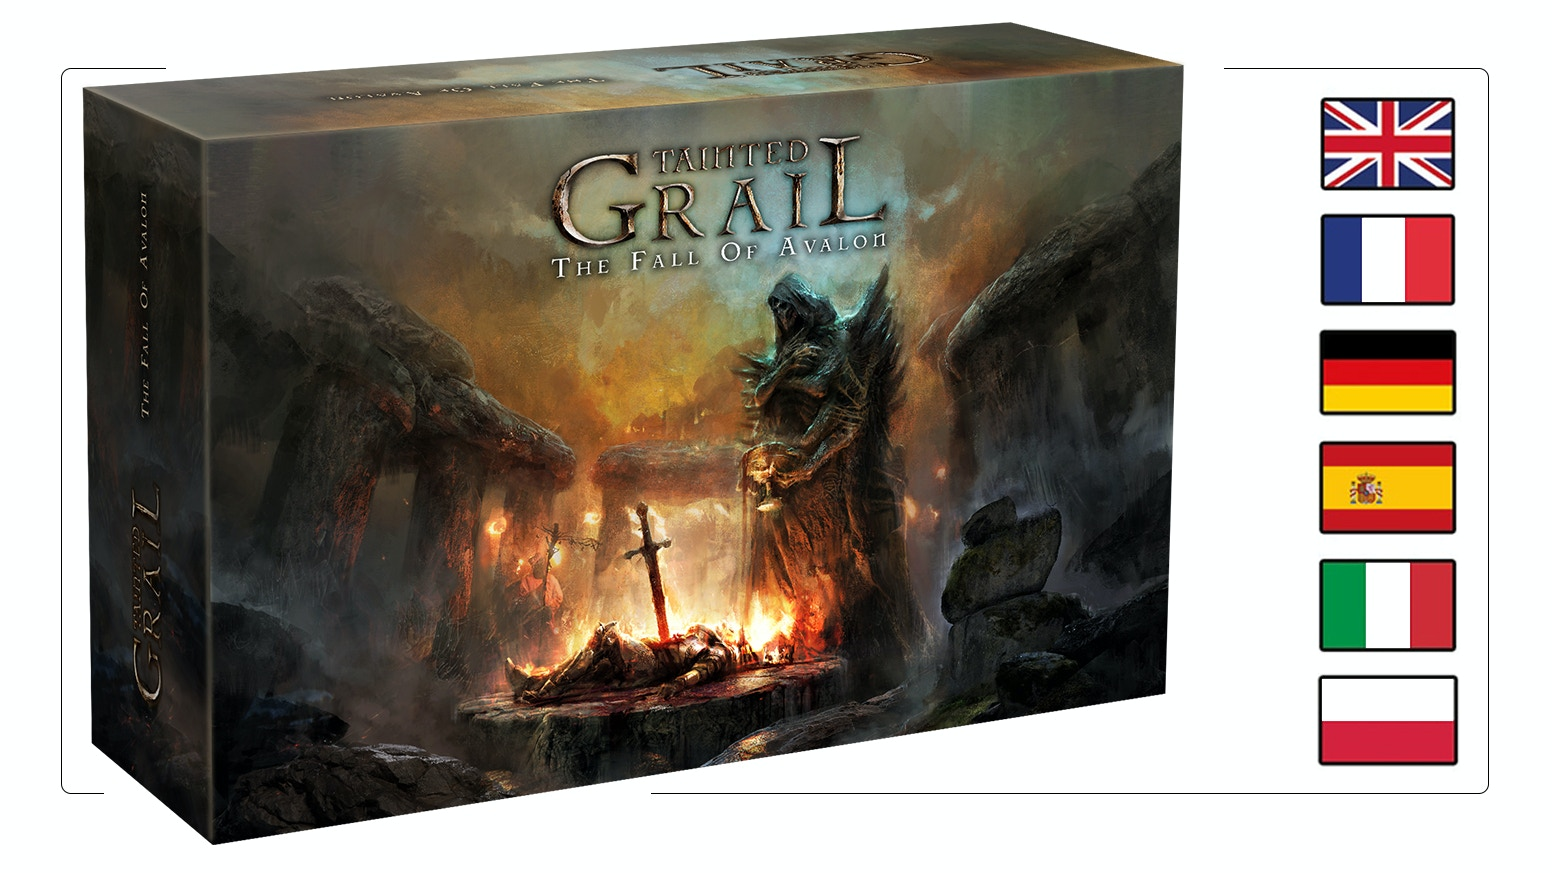 Adventure, survival co-op Board Game set in unique grim world inspired by Arthurian Legends. Unforgettable experience for 1-4 players